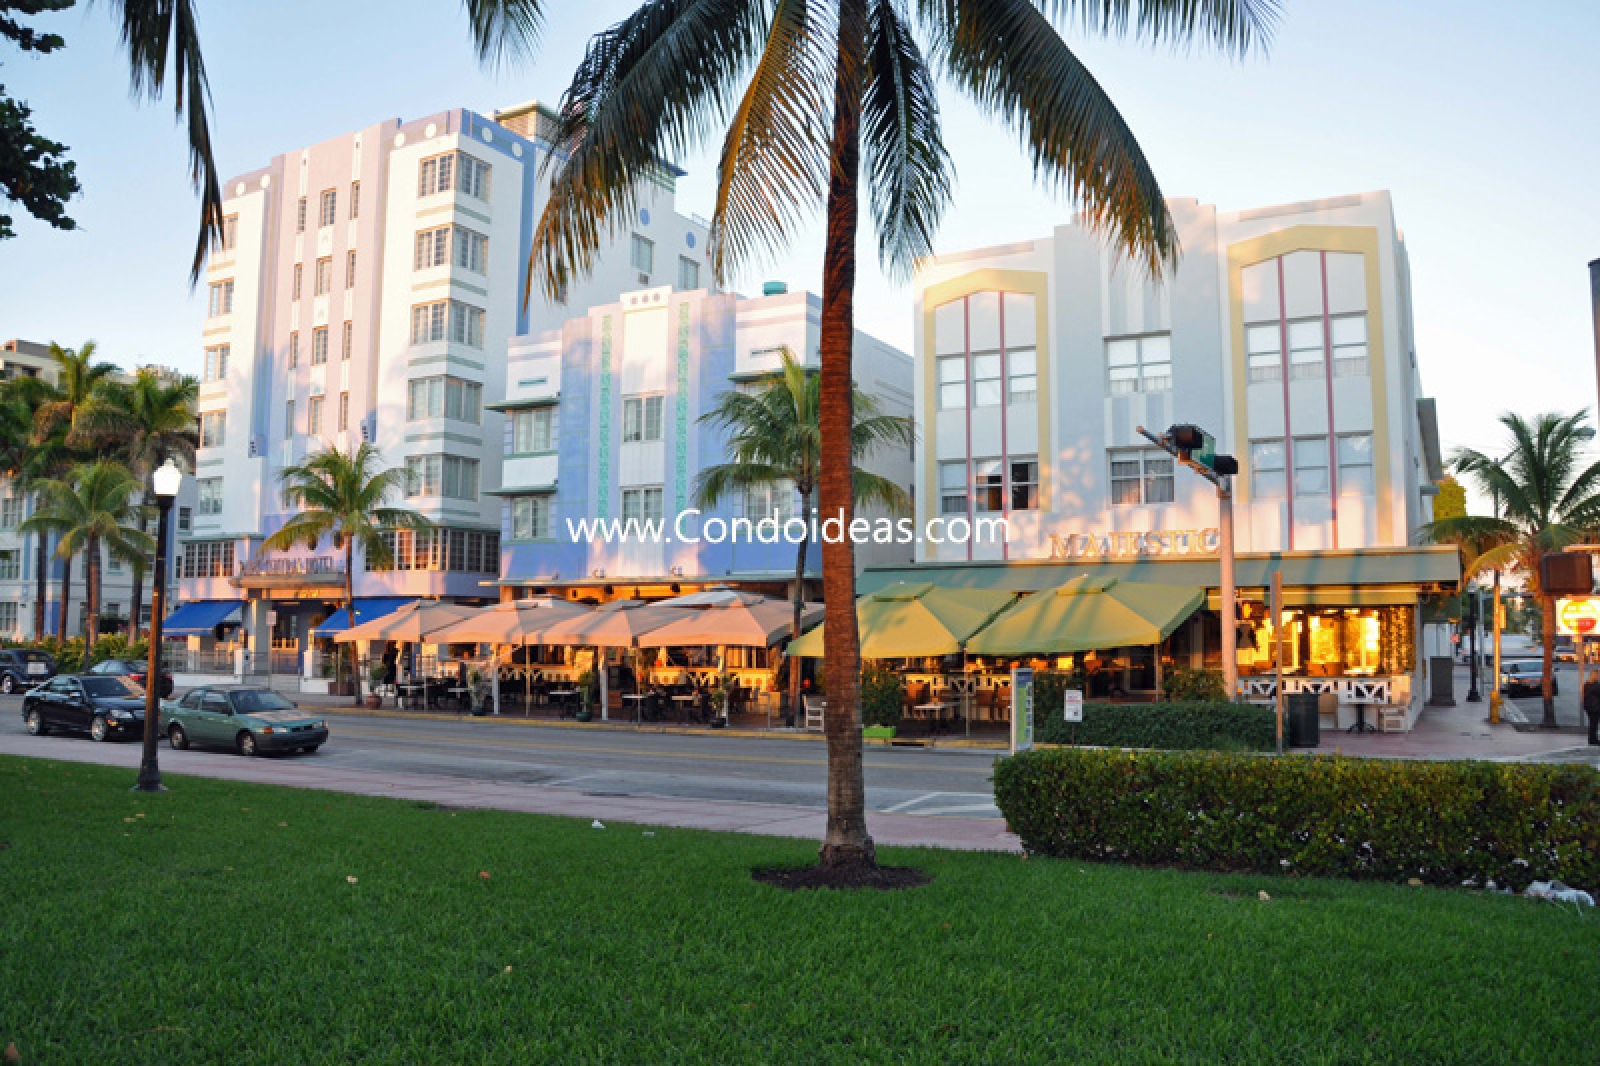 200 Ocean Drive Condo Miami Beach View Property For Sale